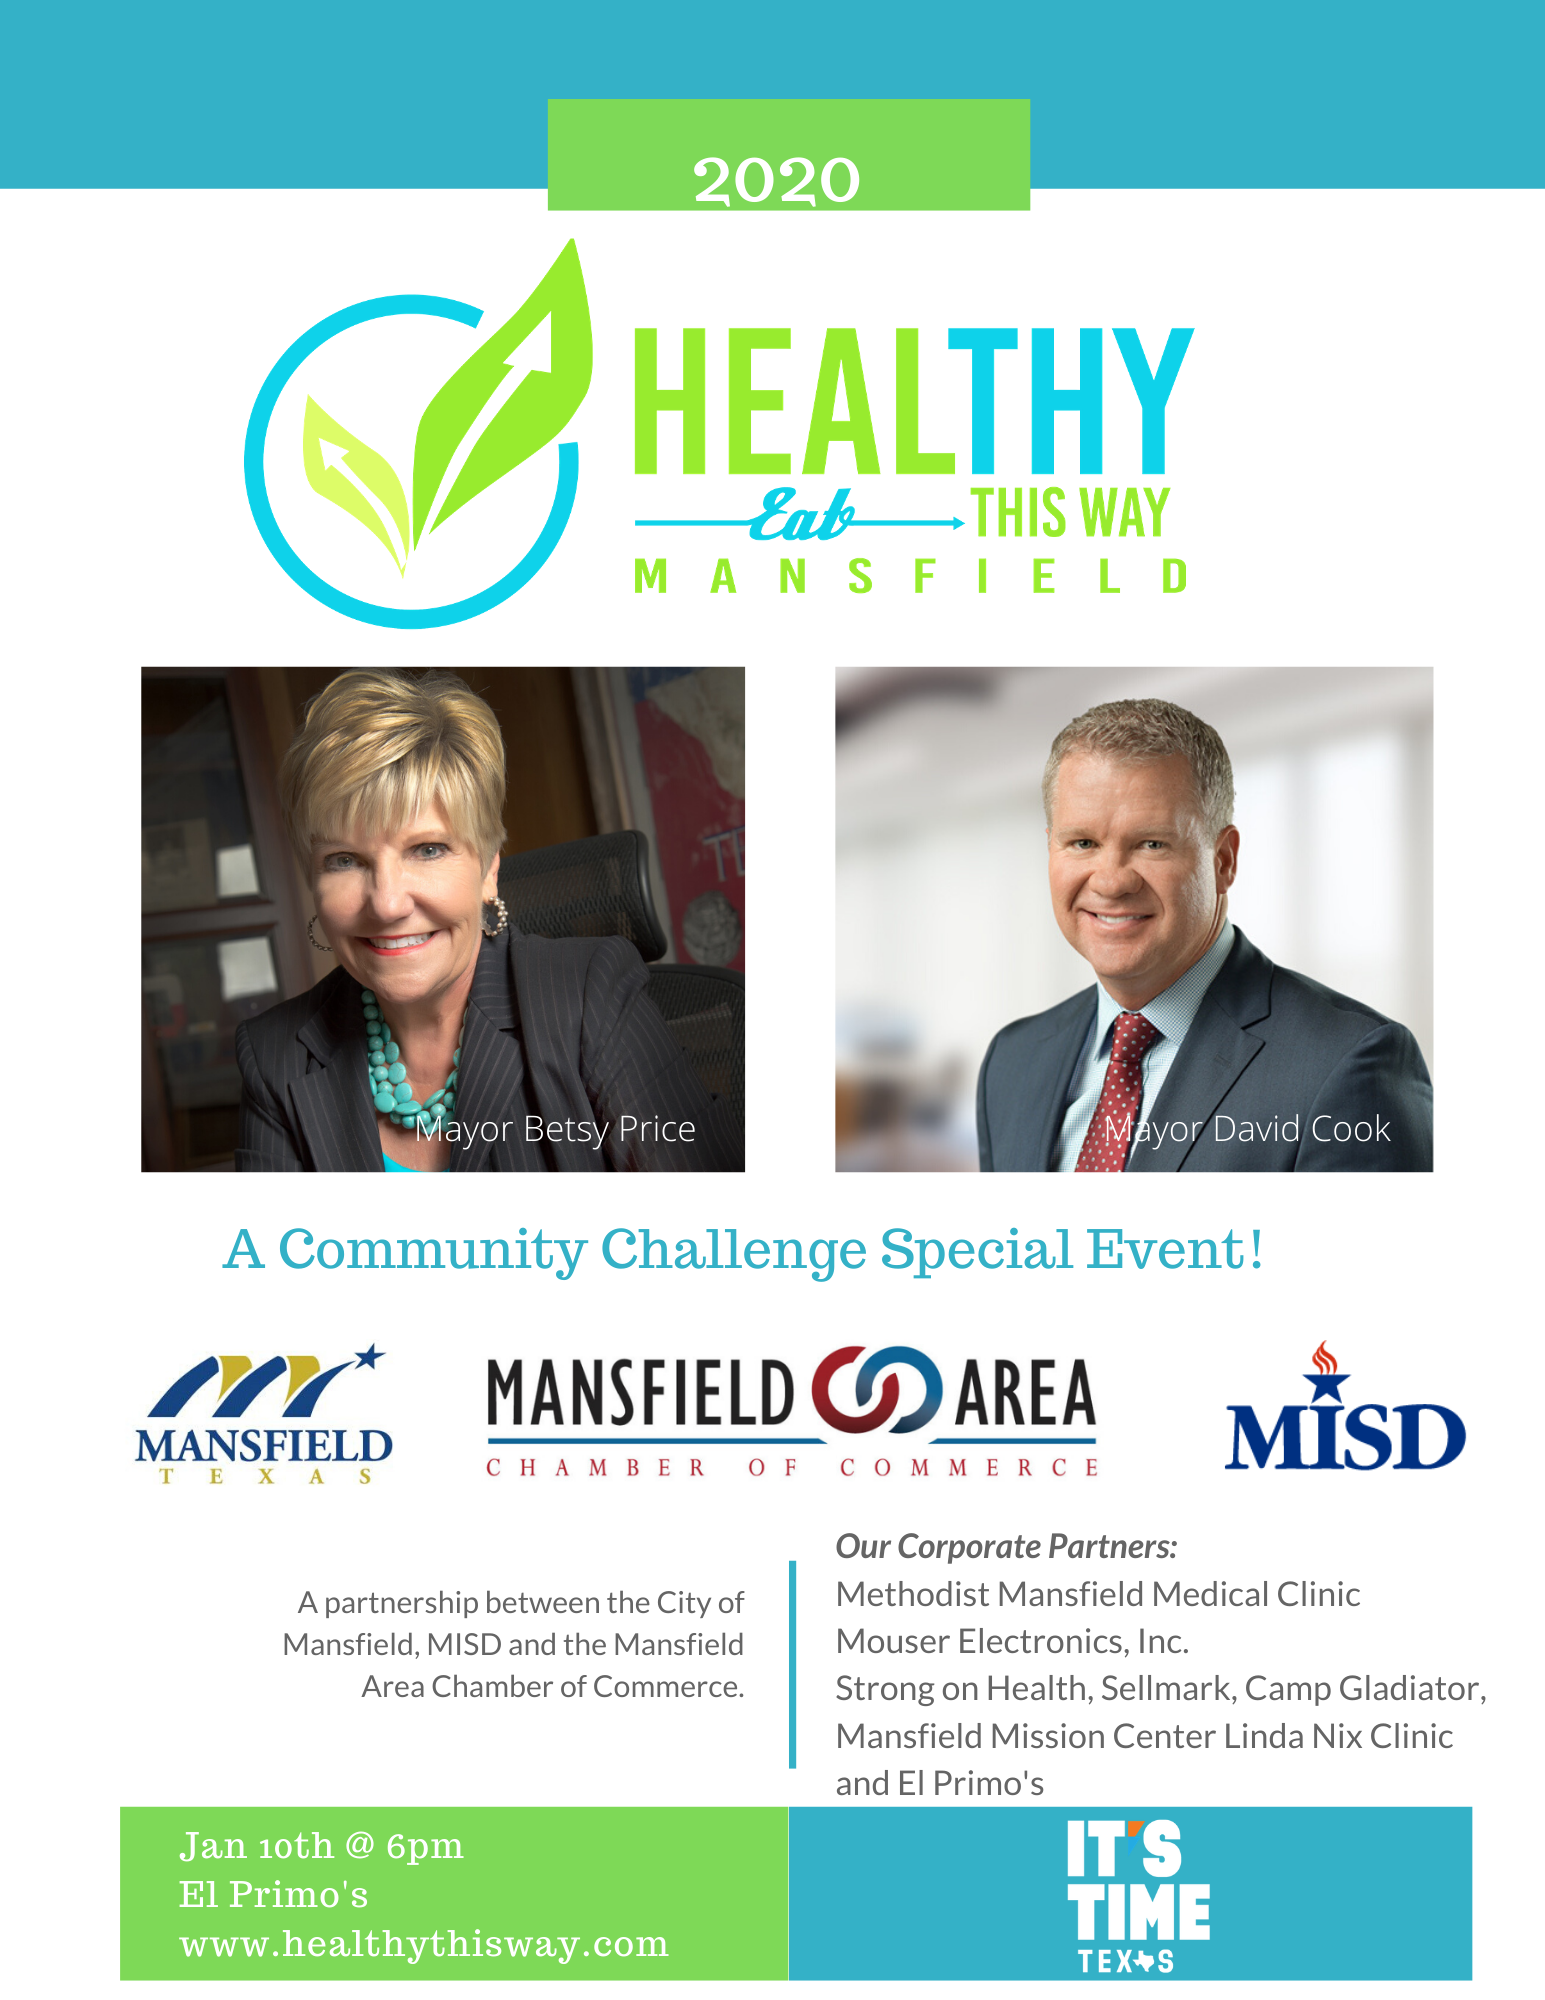 Mansfield Texas is Hosting a Healthy This Way Event That Will Include Mayor Betsy Price of Fort Worth